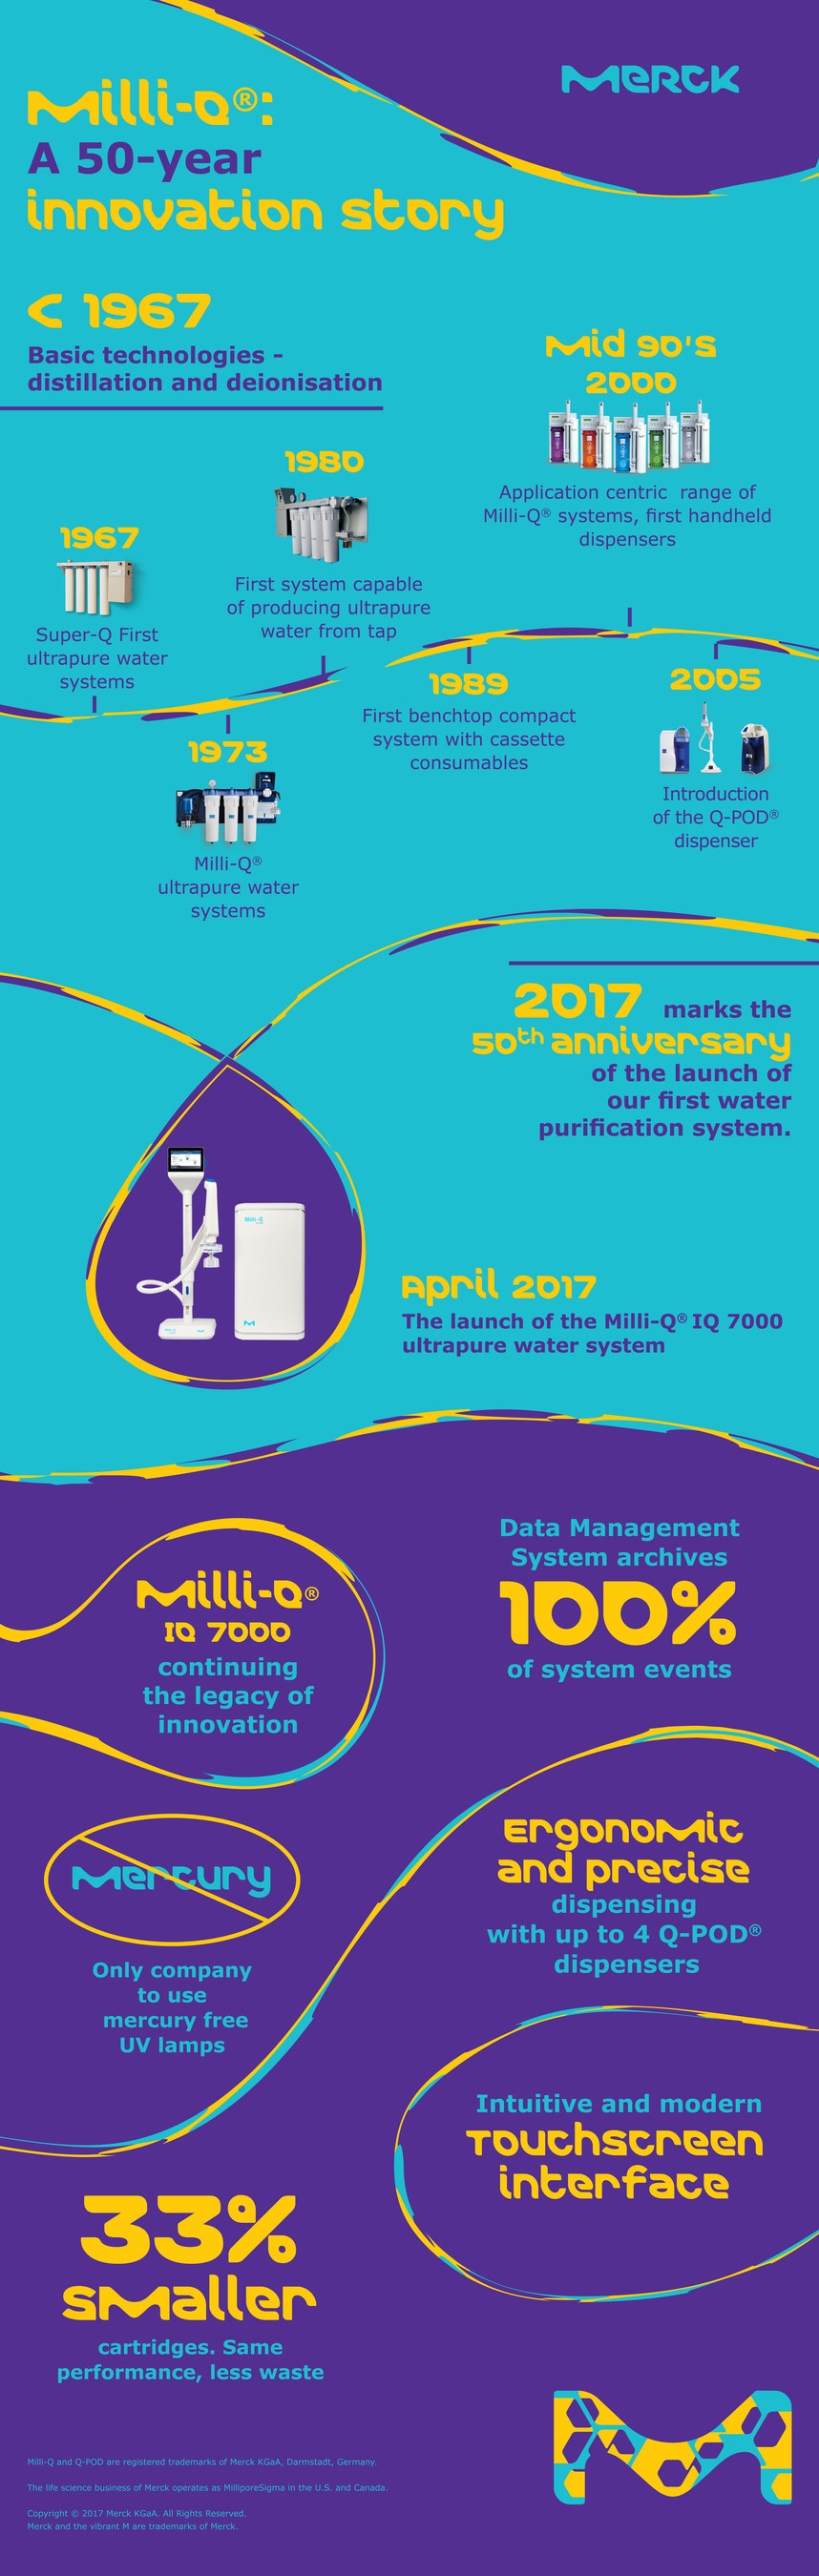 Merck's launch of the Milli-Q(R) IQ 7000 lab water purification system marks 50th anniversary of the company's first lab water system launch. This system is the first to use environmentally friendly, mercury-free UV lamps. Its smaller, ergonomic design reduces waste and helps increase productivity and accelerate research for scientists in the lab.